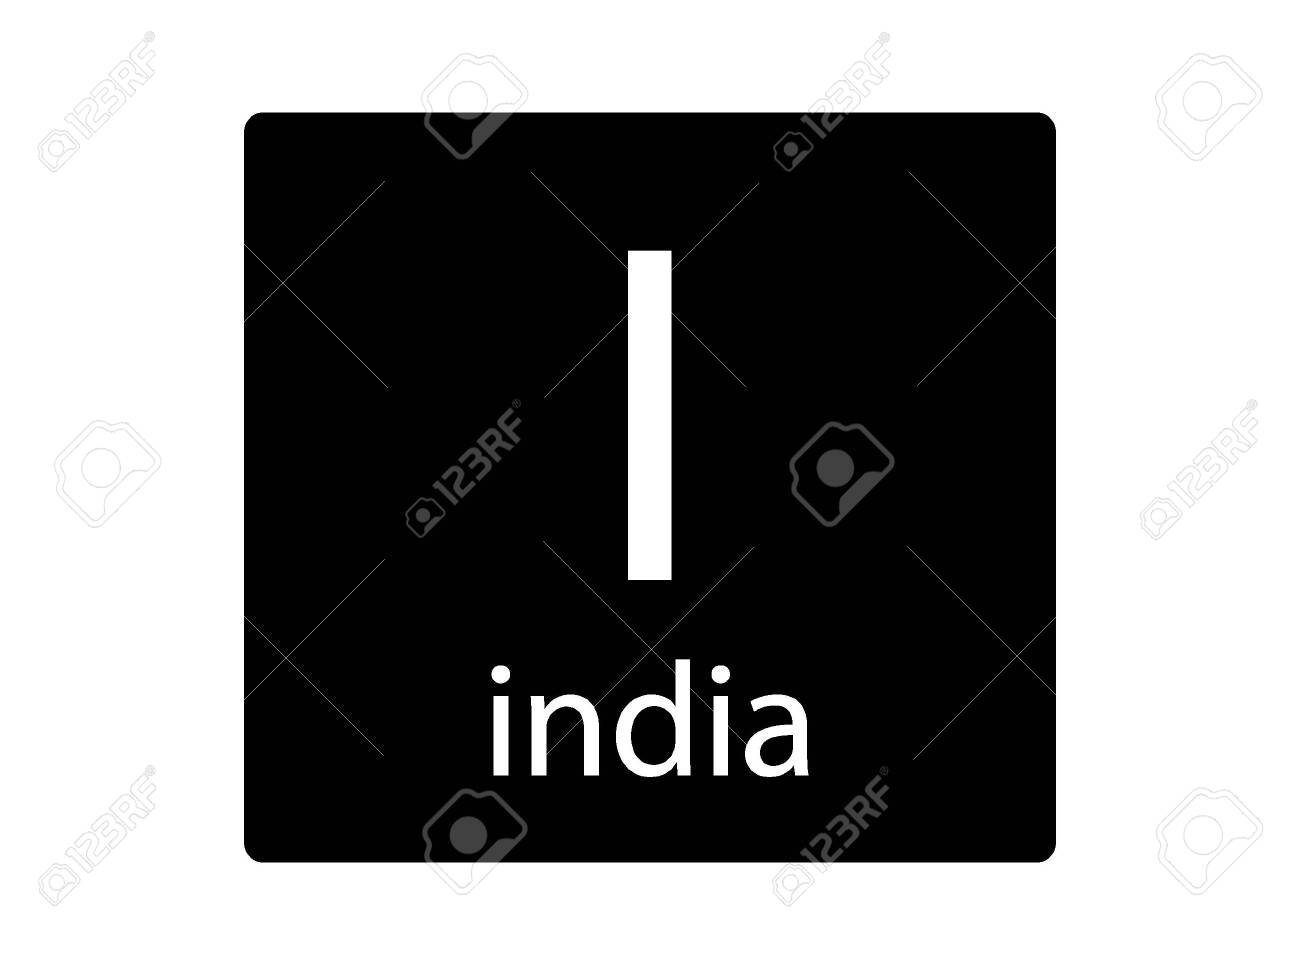 Army Phonetic Alphabet Letter India Royalty Free Cliparts Vectors And Stock Illustration Image 133345217